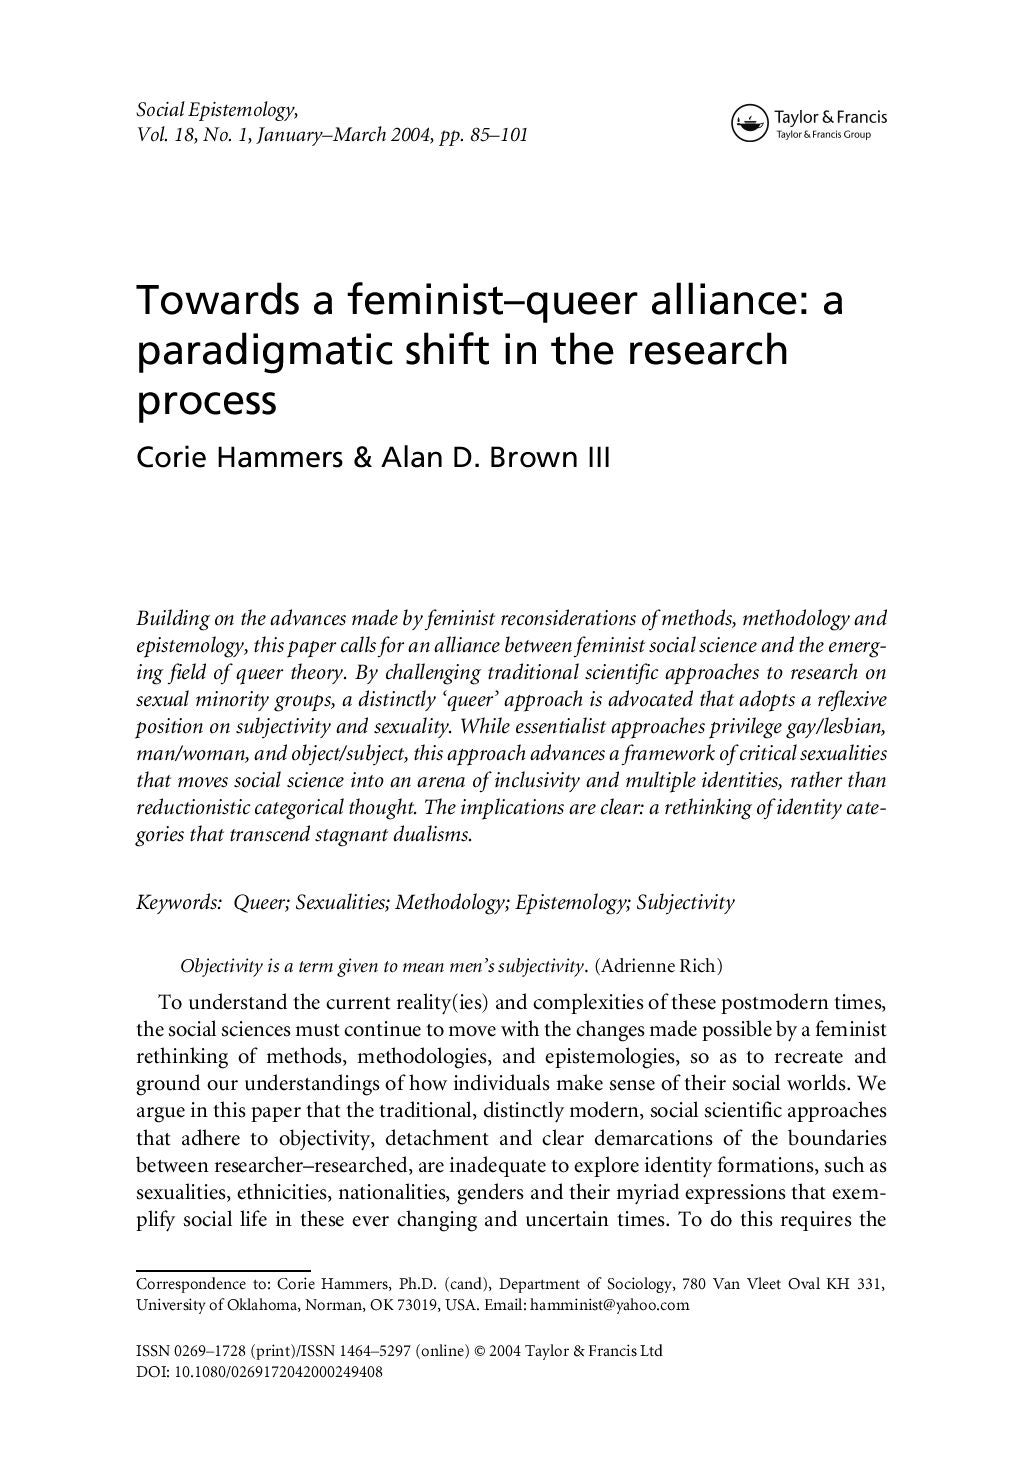 feminist epistemology essay Nection between feminism and epistemology as the rubric feminist episte- mology requires perhaps you think that only someone of extreme right-wing political views could possibly be less than enthusiastic about feminist epistemology if so, you are see, eg, nancy hartsock's essay in w i g and piintikka, k v a i n g re.